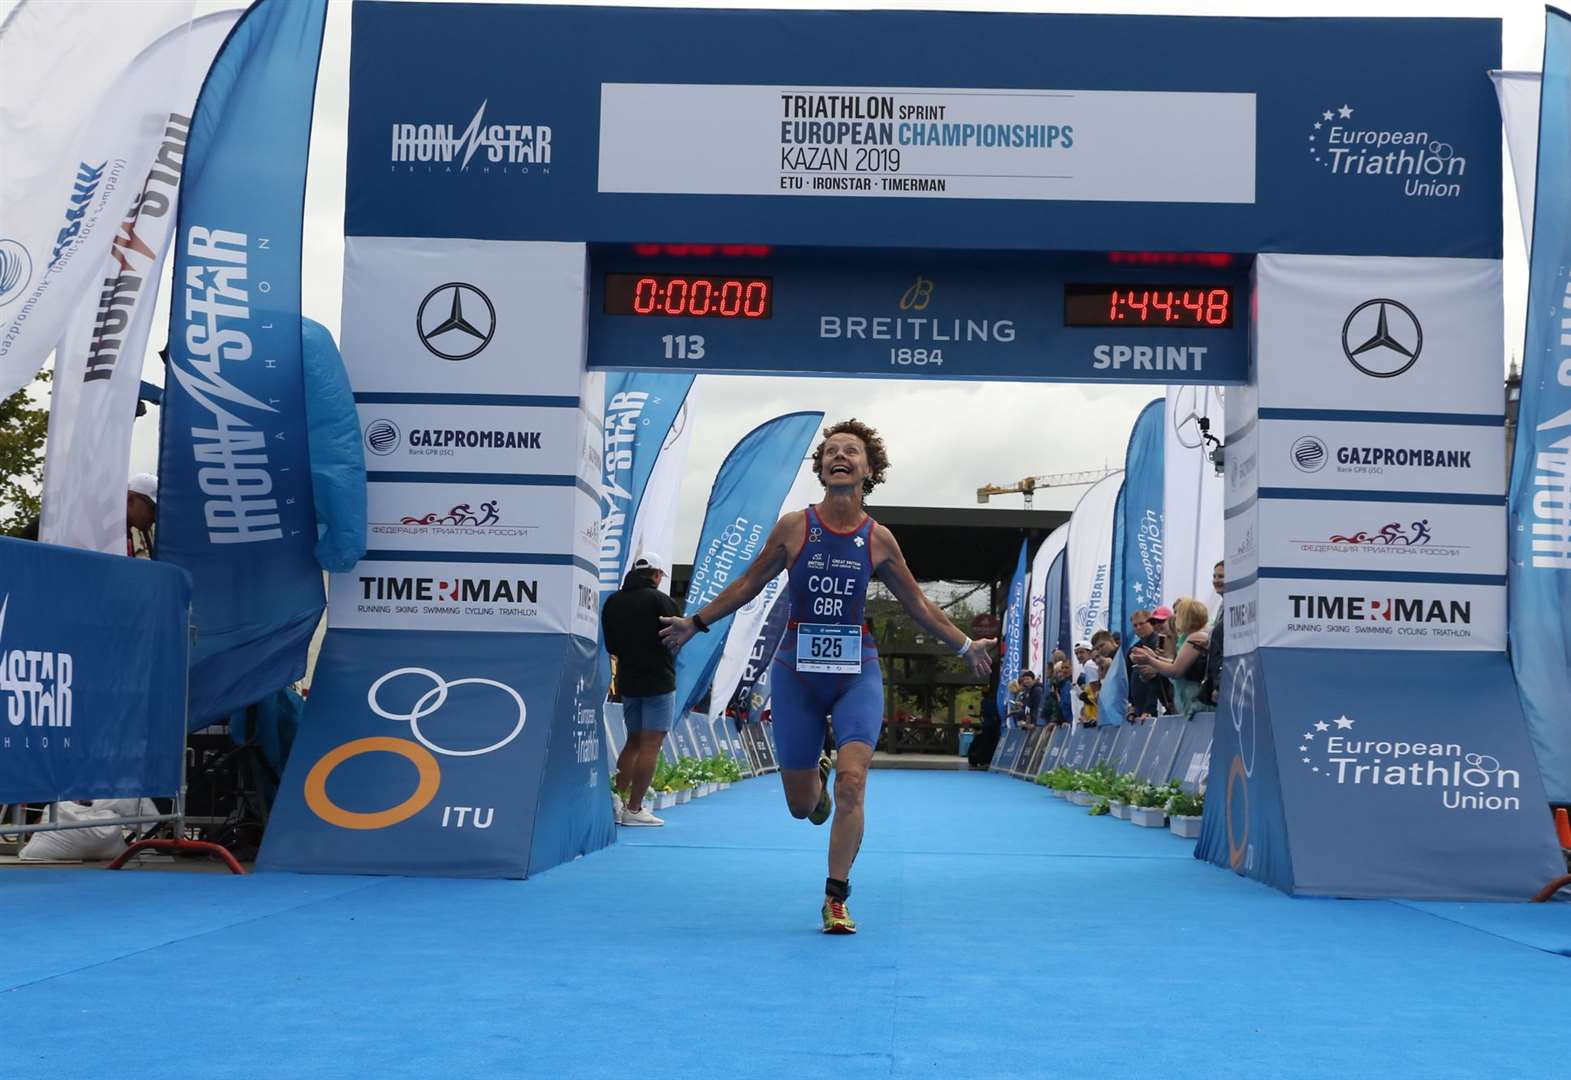 Stortford's 62-year-old European gold medallist urges everyone to give triathlon a try